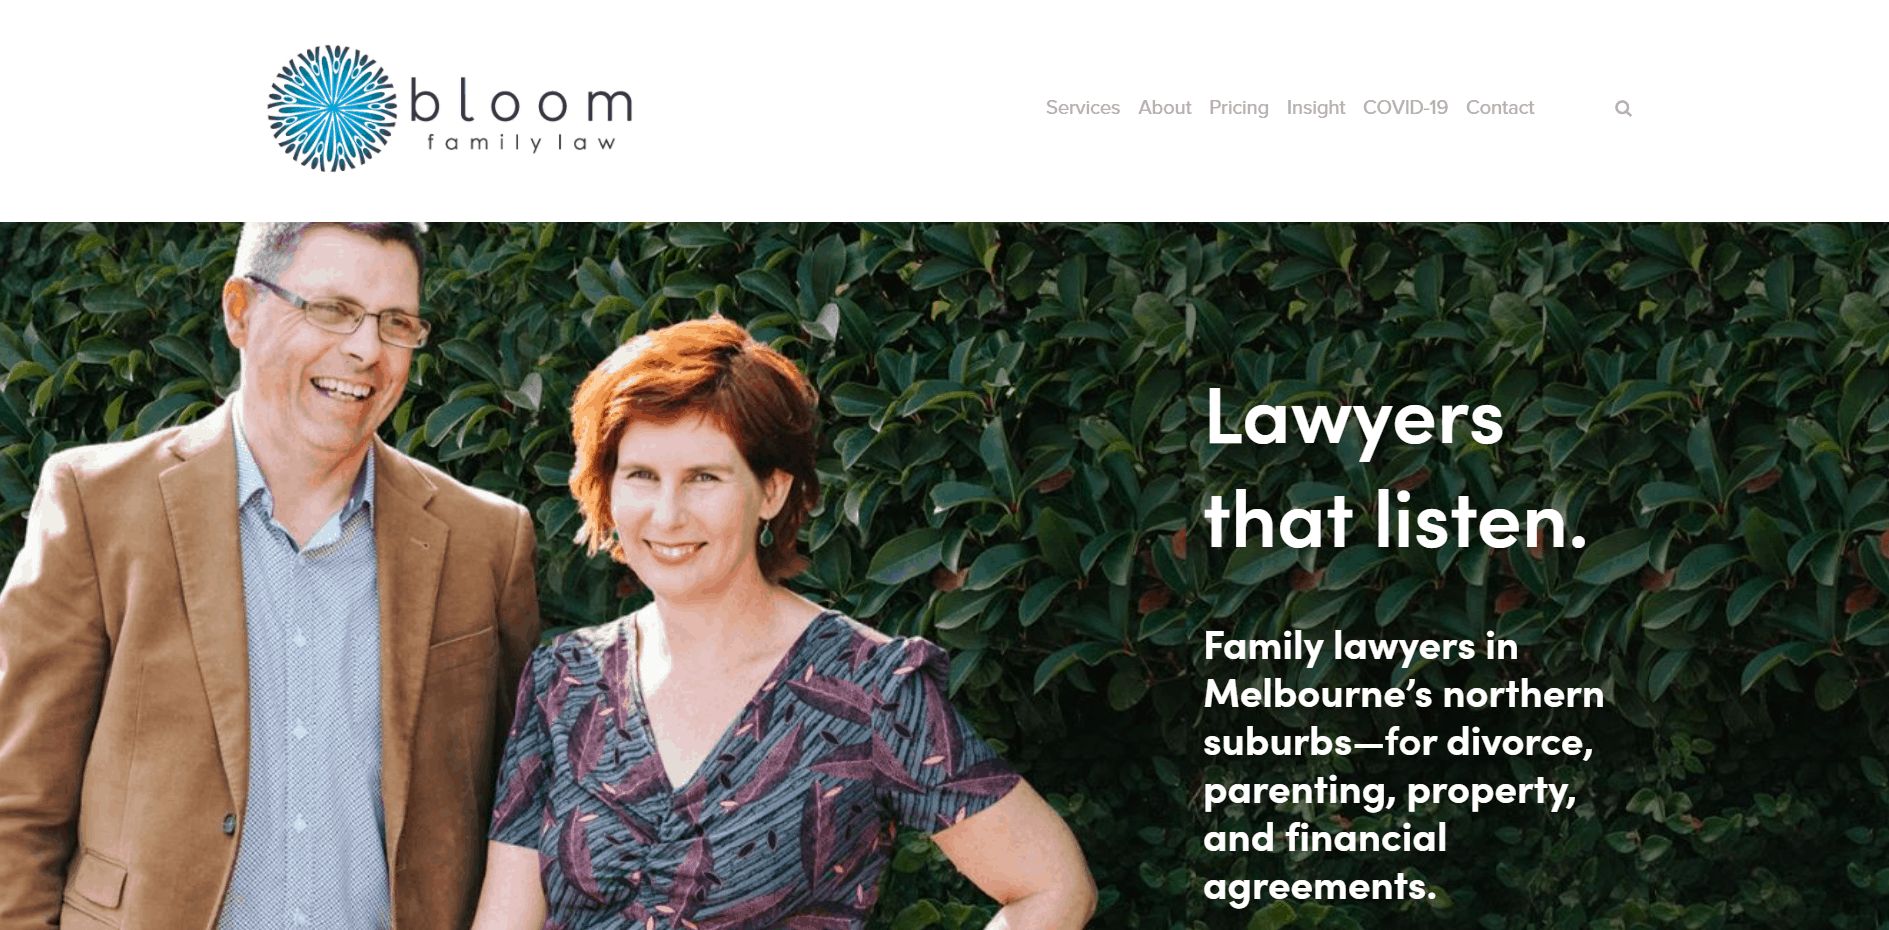 Bloom Family Law